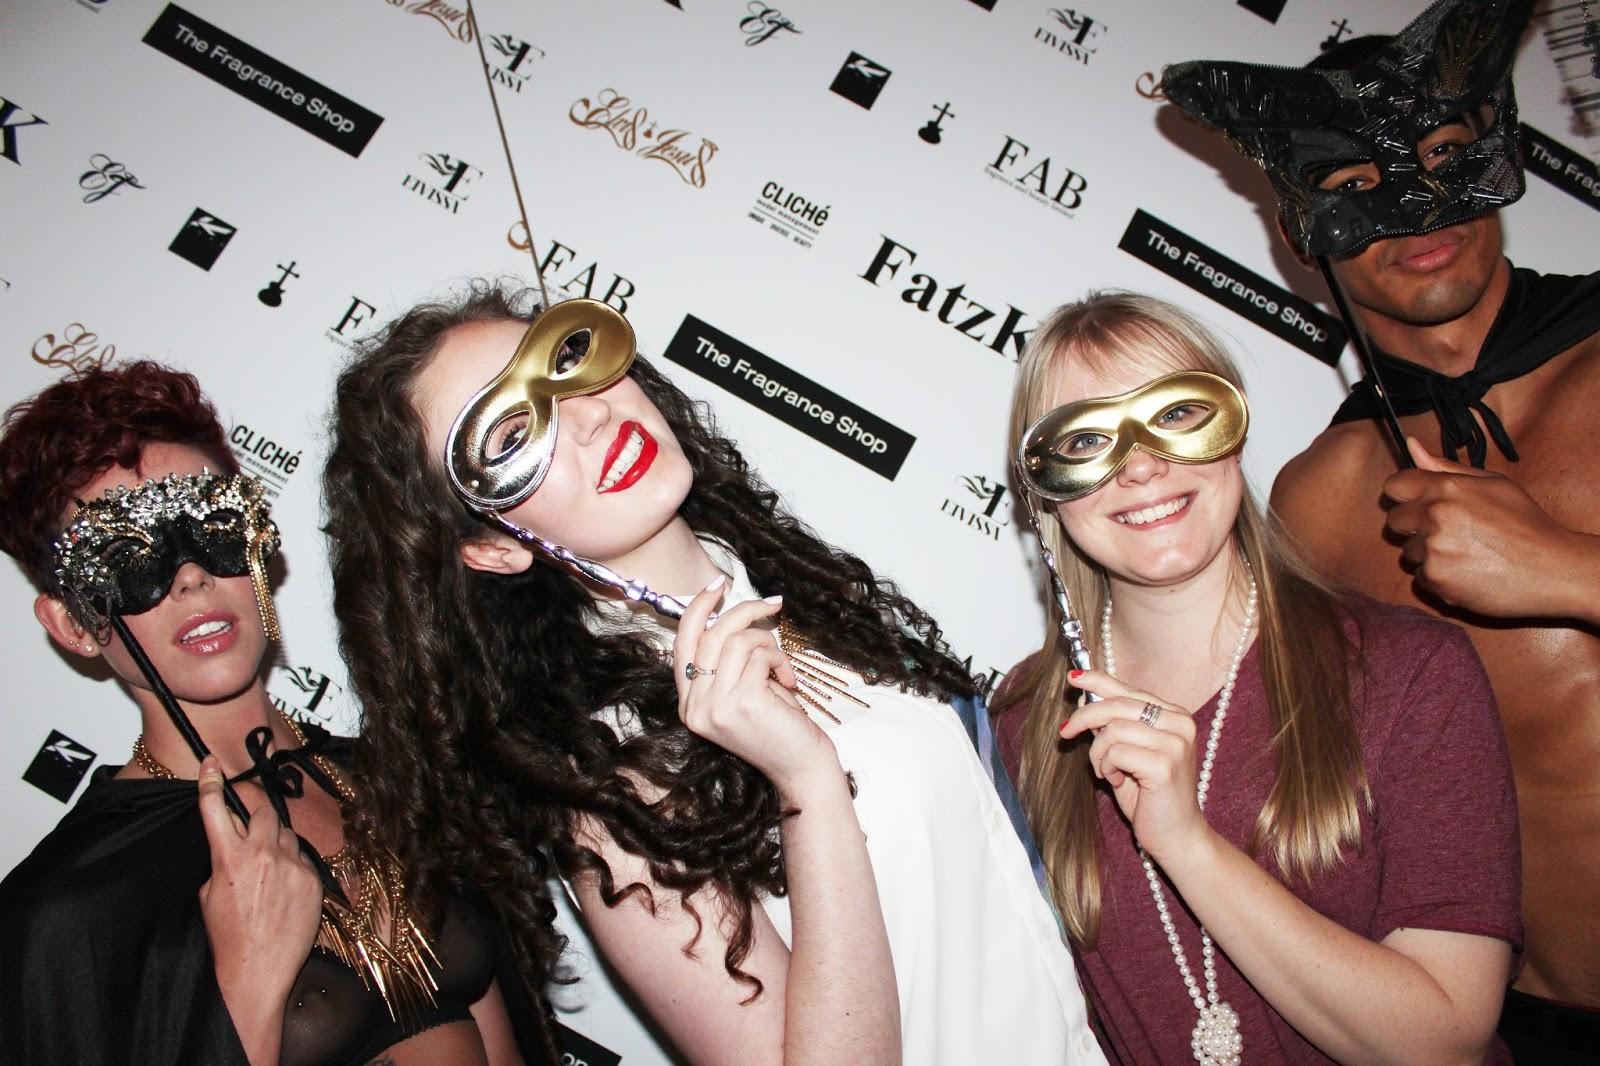 Elvis Jesus Fragrance Launch - Lily Kitten | Fashion, Beauty and ...